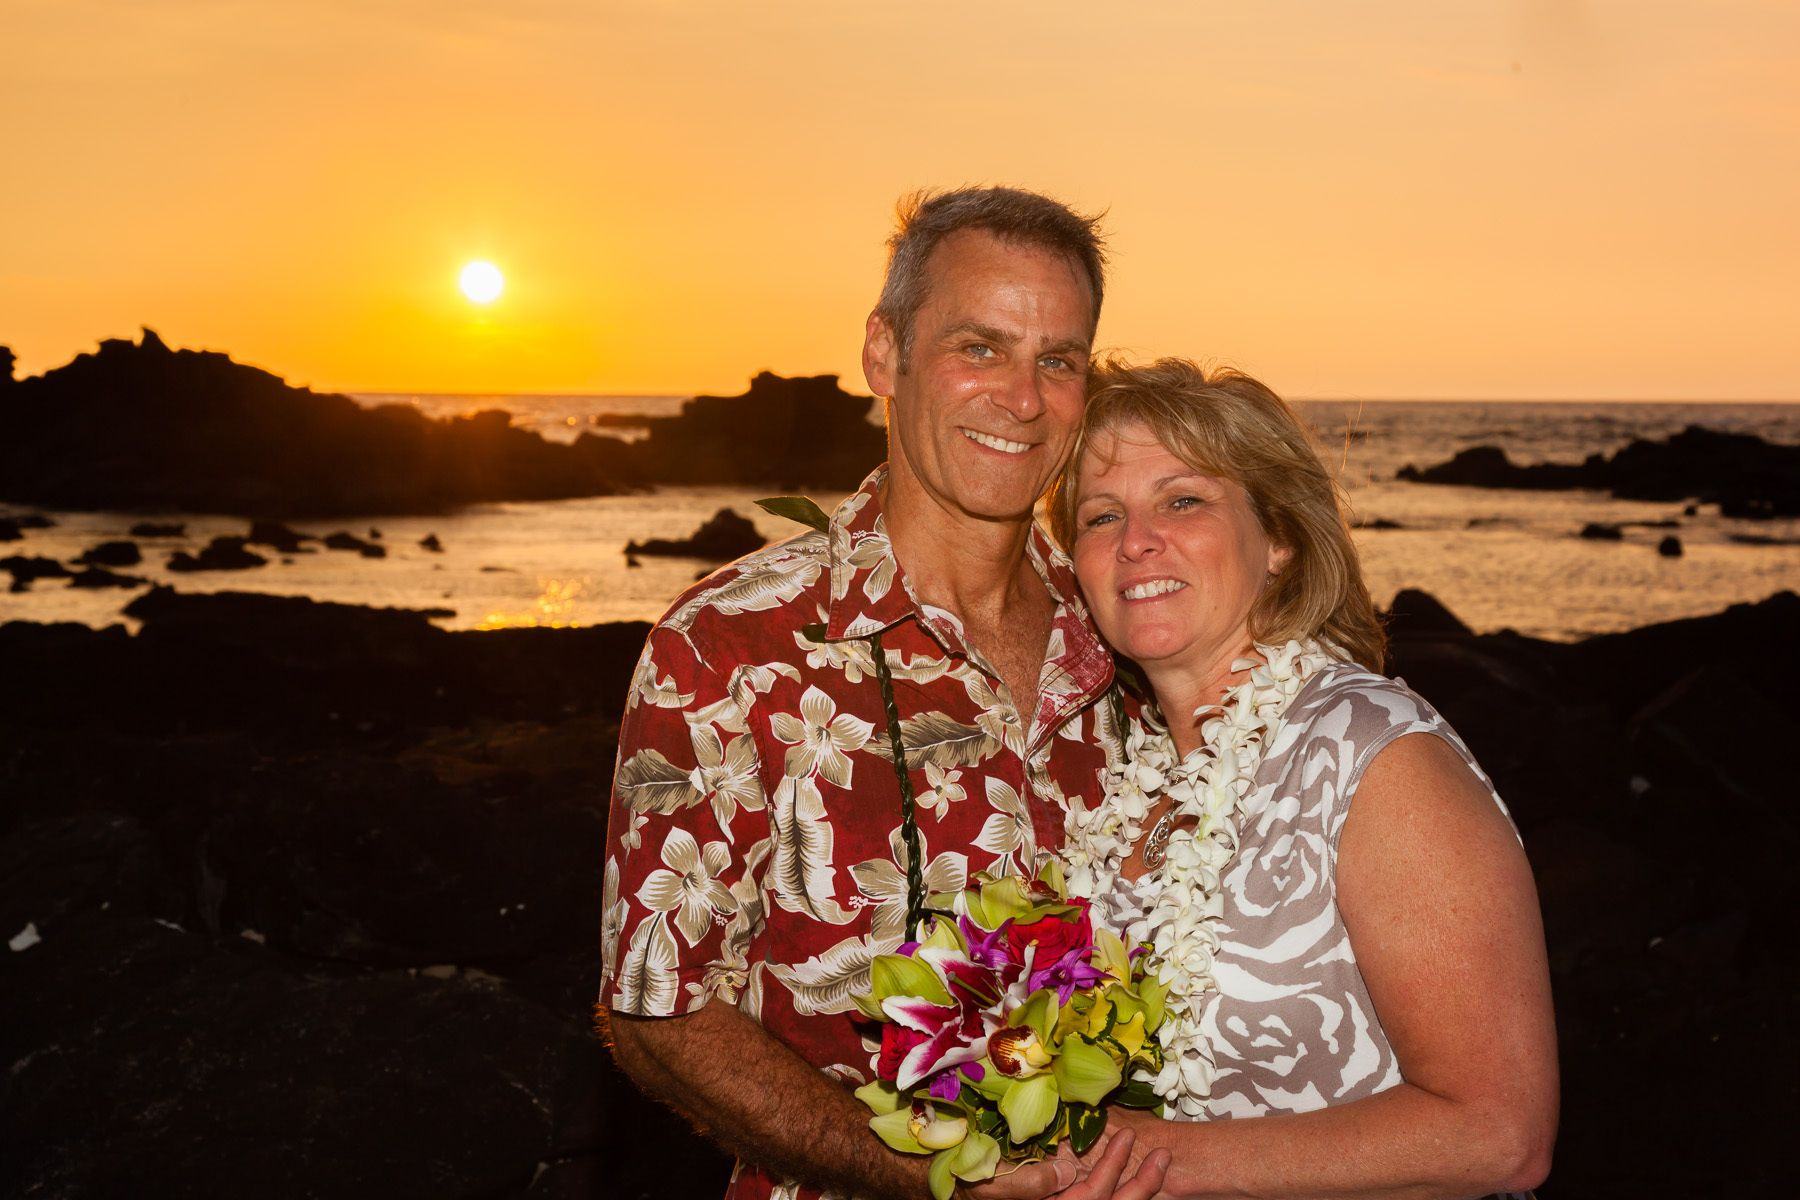 1kailua_kona__honolulu__hawaii__wedding__photographer_1203